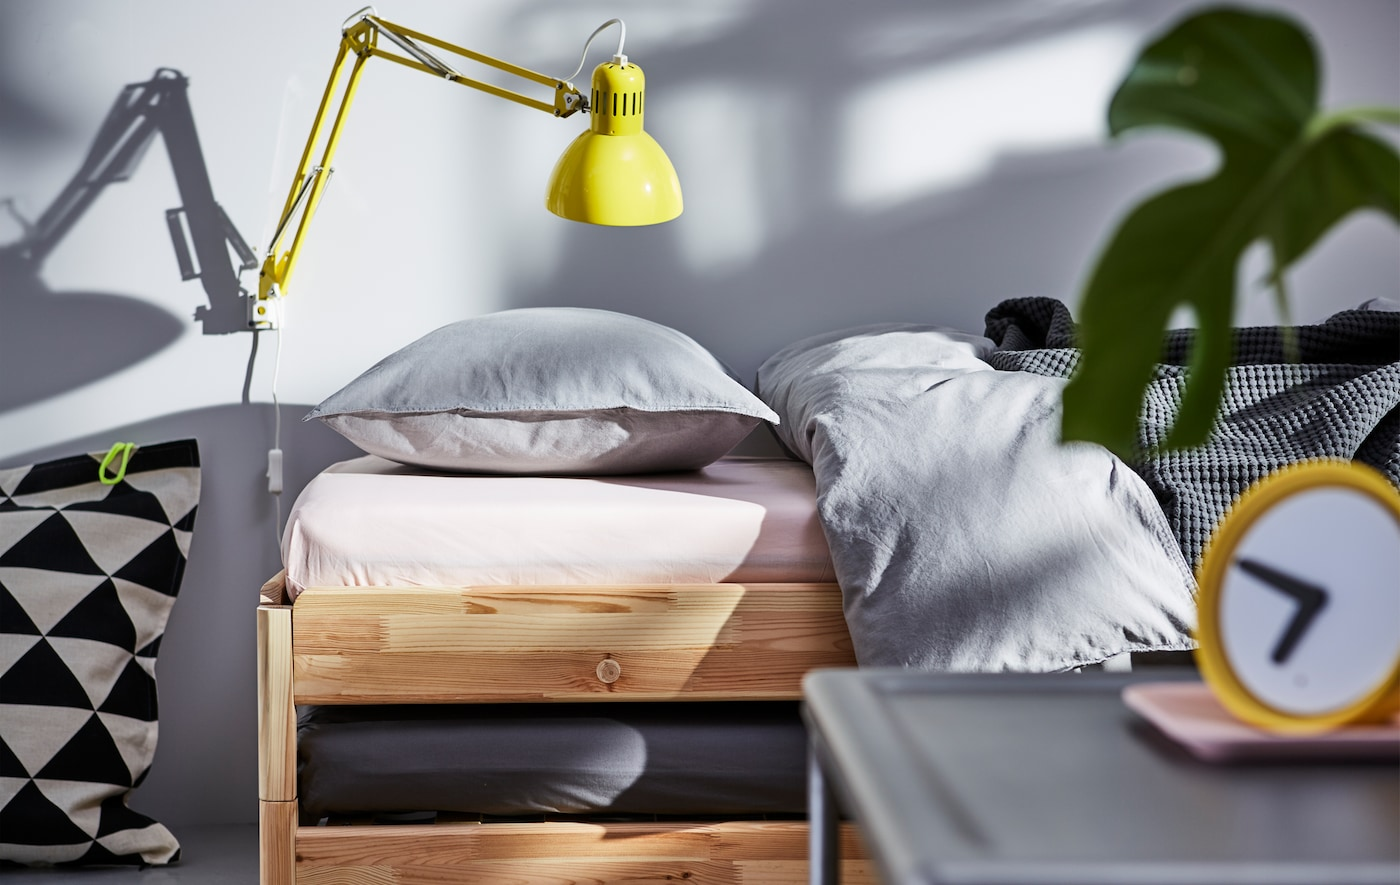 An IKEA UTÅKER bed with a yellow wall lamp over the pillow.